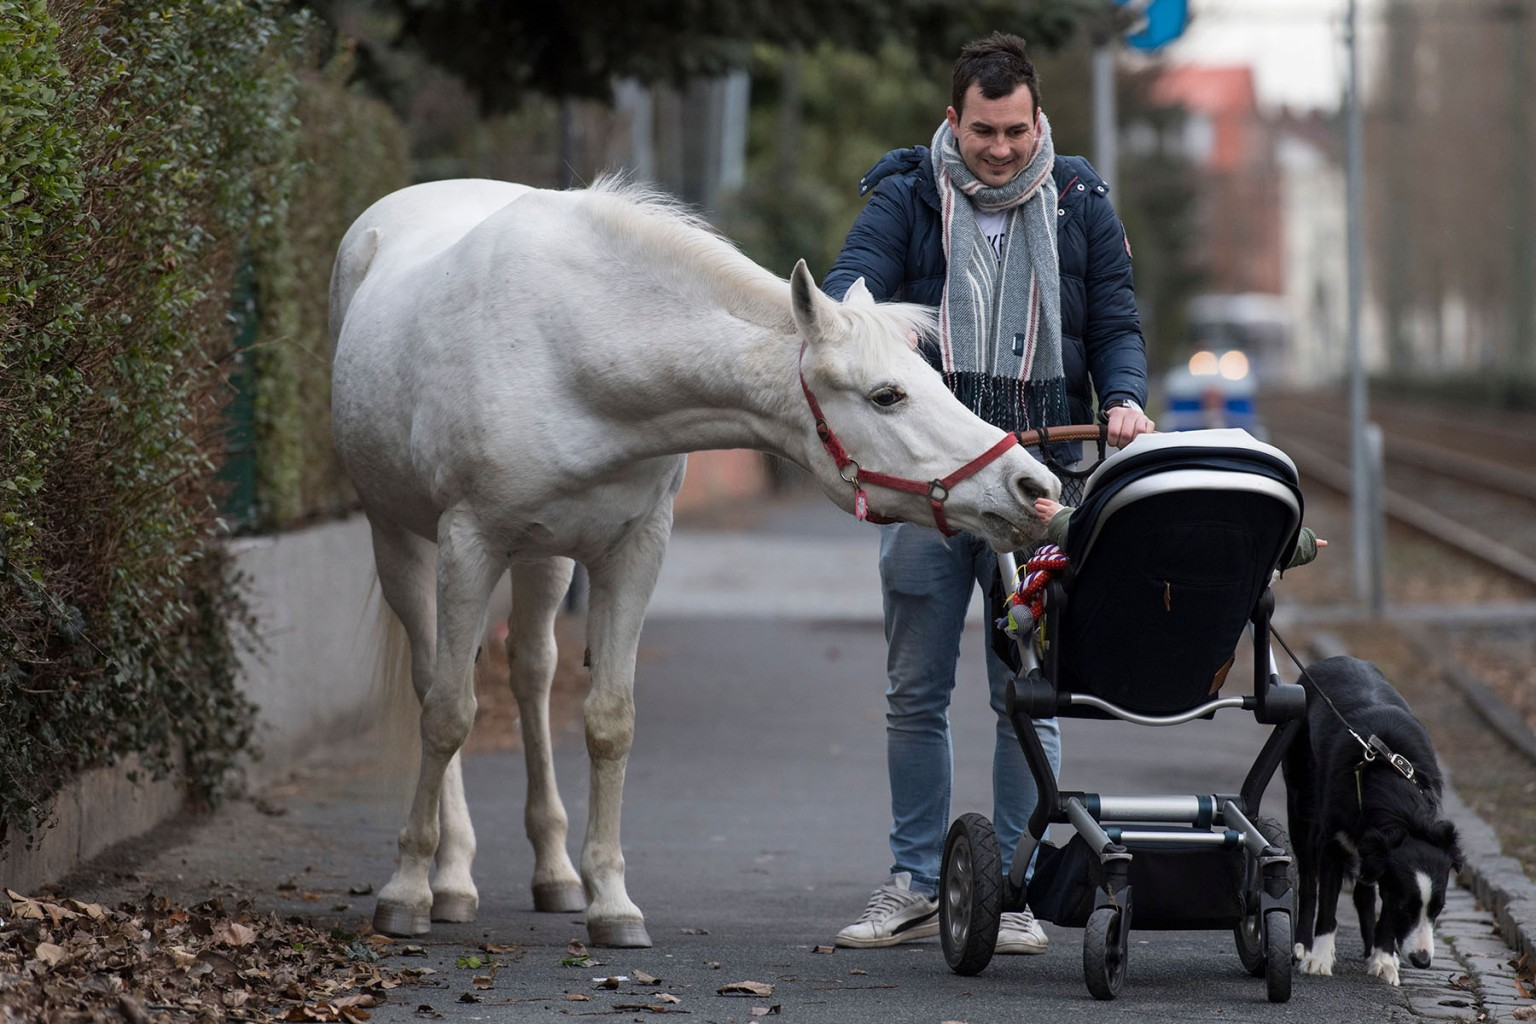 "Jenny the horse inspects the baby of Raphael Wöllstein as he pushes a pram through the Fechenheim district of Frankfurt am Main, Germany, on March 8. Jenny is allowed to roam as her owner opens her stable door every day and fixes her with a sign reading ""My name is Jenny. I've not escaped, just taking a stroll.""  BORIS ROESSLER/AFP/Getty Images"